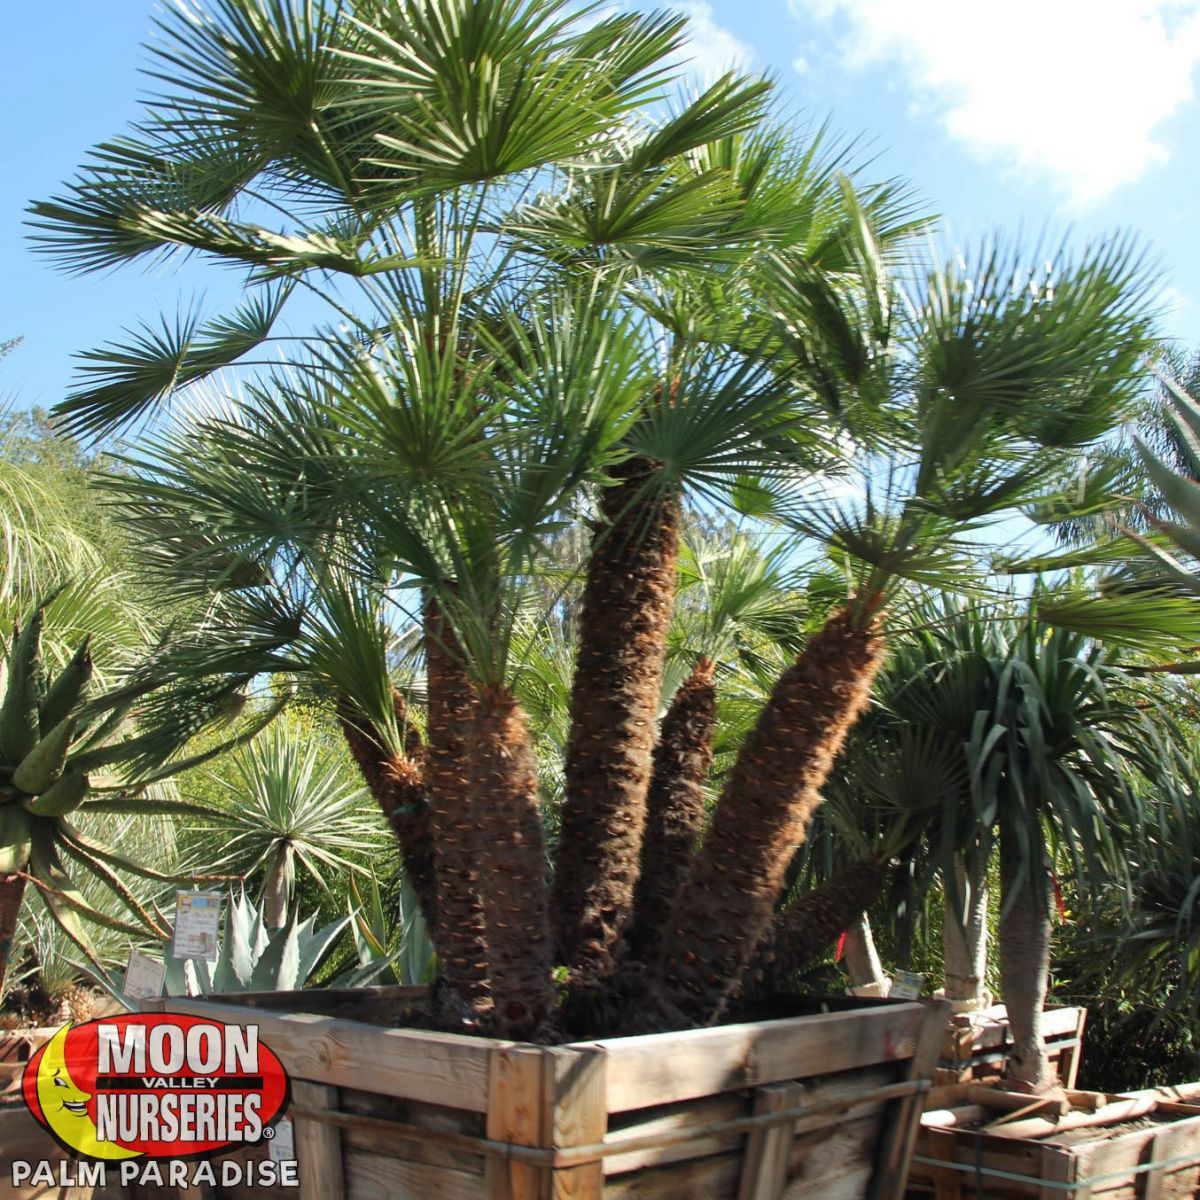 Mediterranean Fan Palm Palm Tree Palm Paradise Nursery